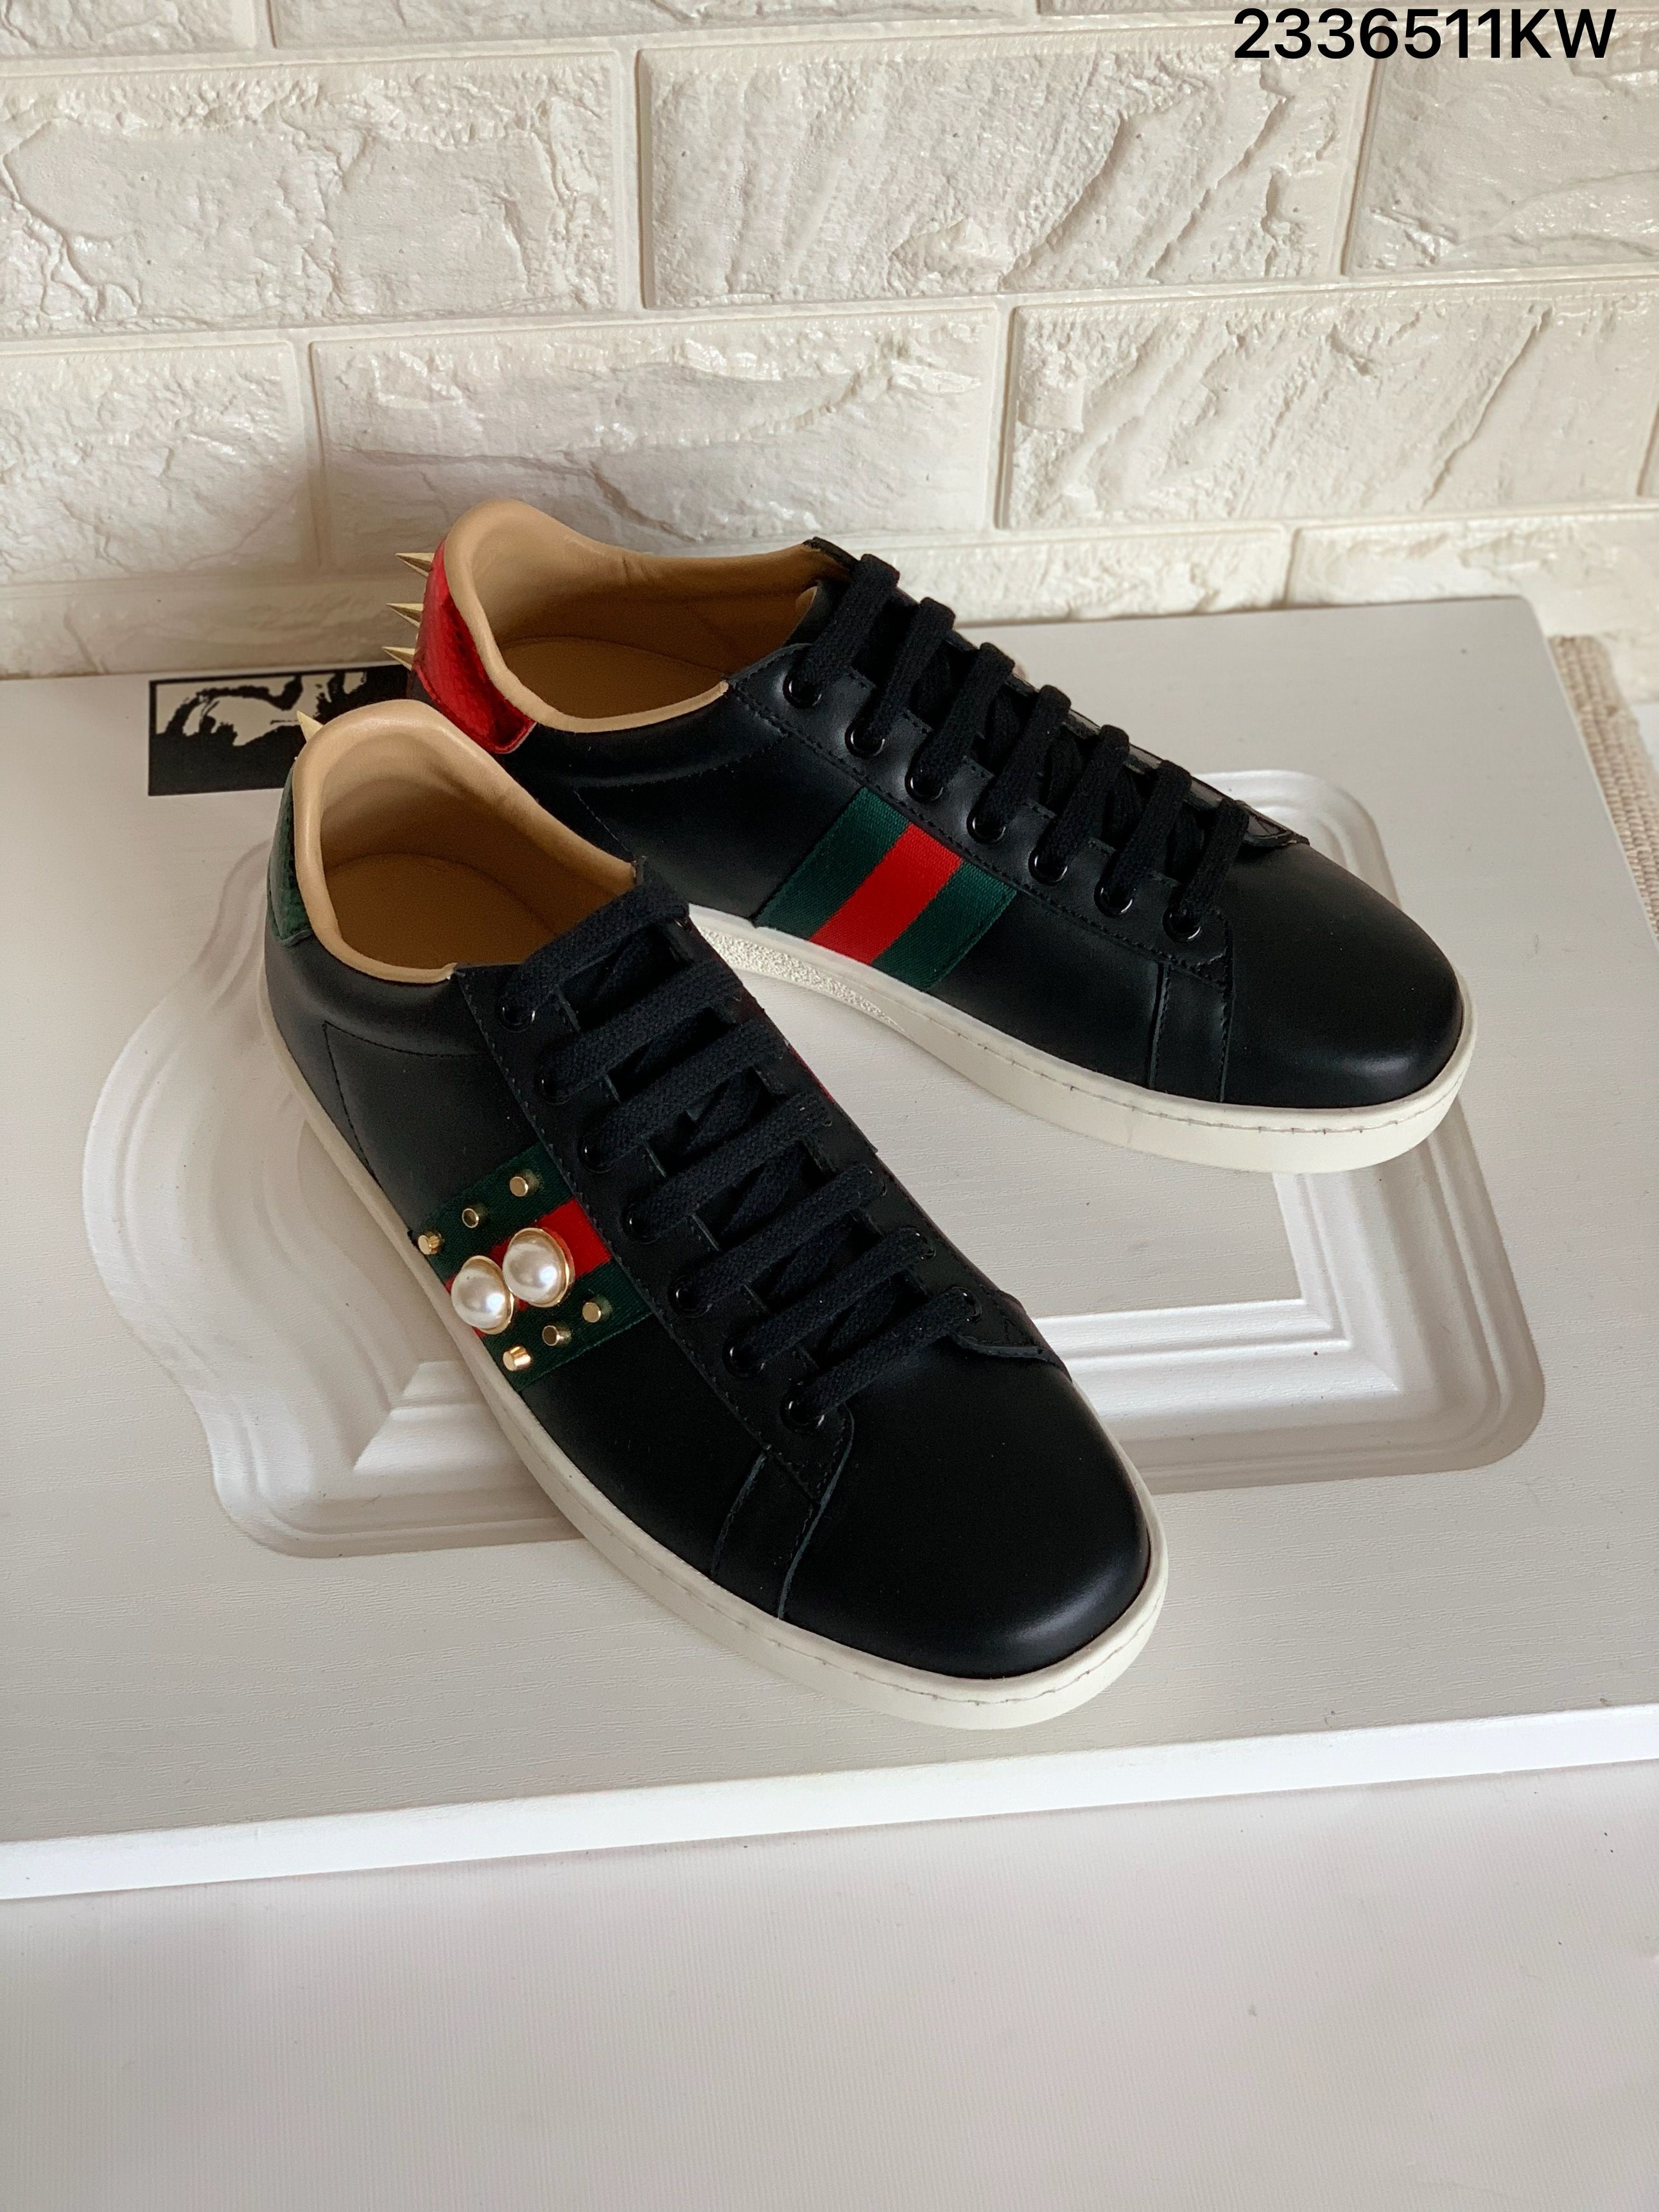 Gucci Ace Sneakers Black Leather Shoes Pearls Spikes Gucci Ace Sneakers Black Leather Shoes Sneakers Black